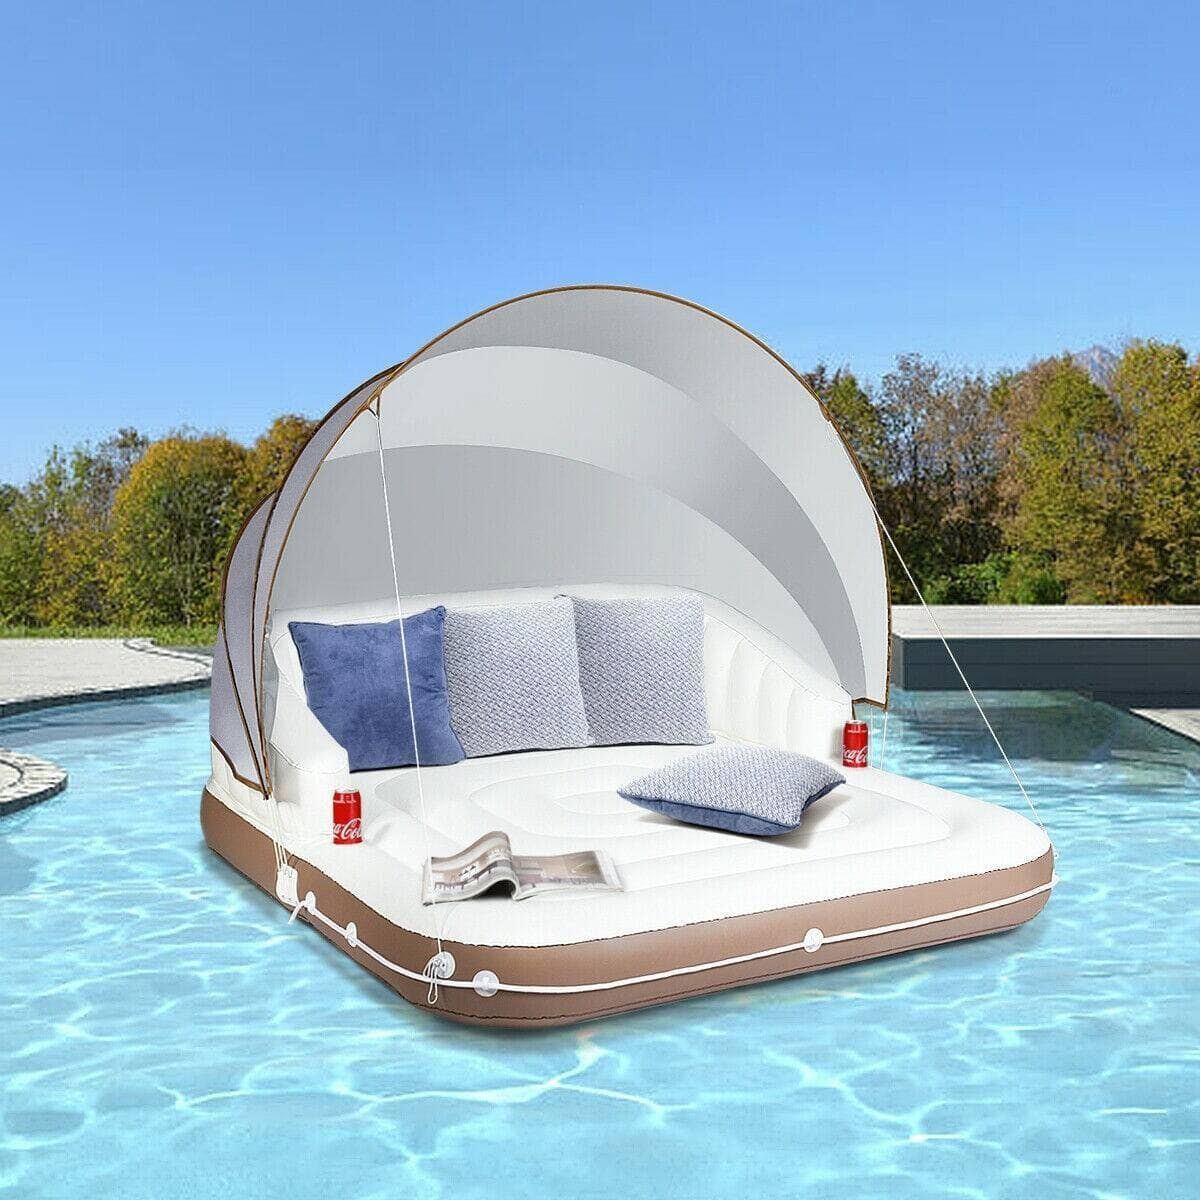 Inflatable Pool Float Lounge Swimming Raft $144.95 + Free Shipping